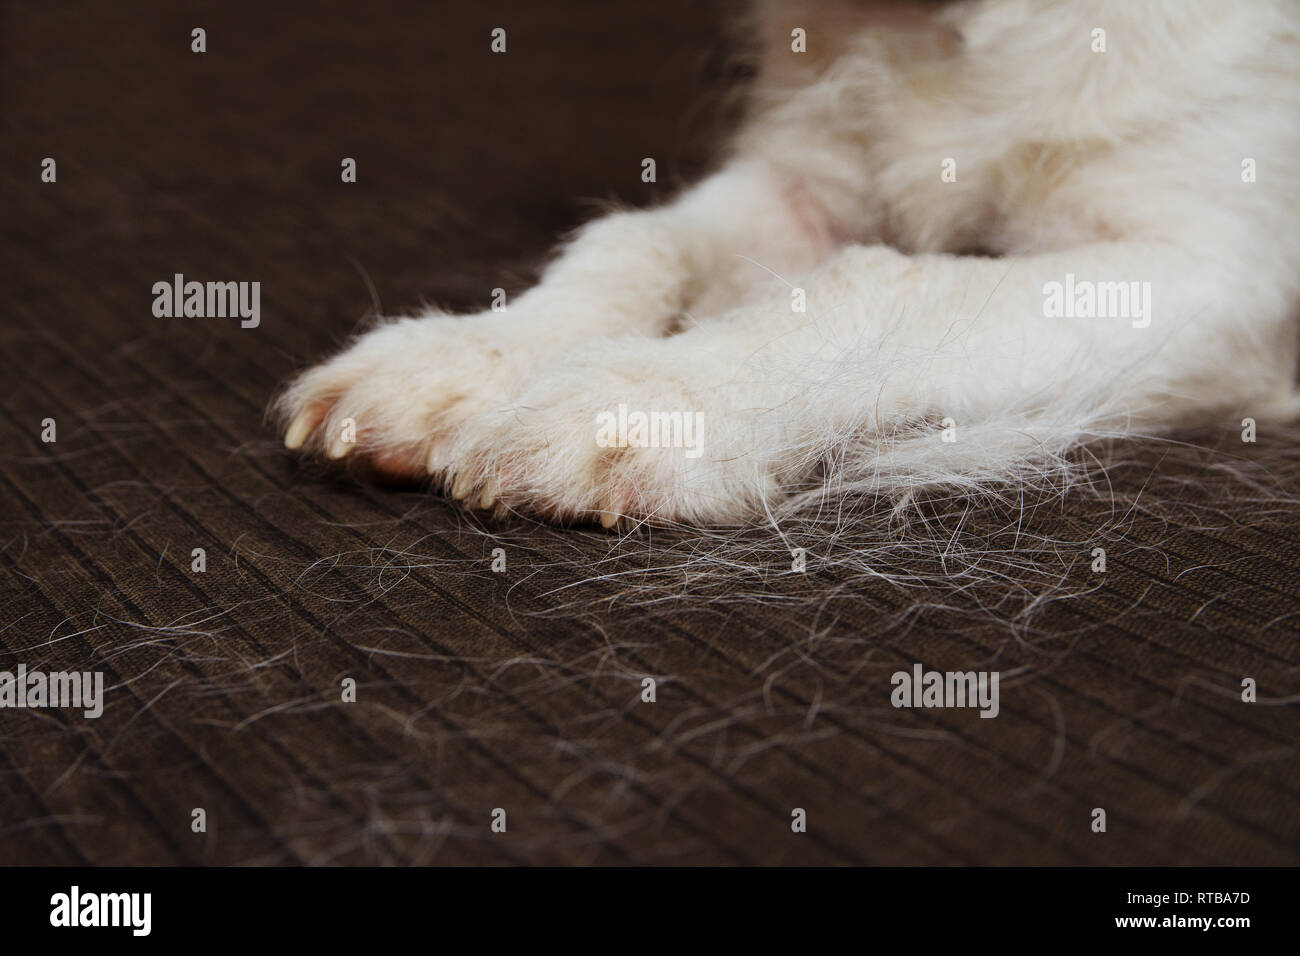 Hair On Claws Stock Photos Amp Hair On Claws Stock Images